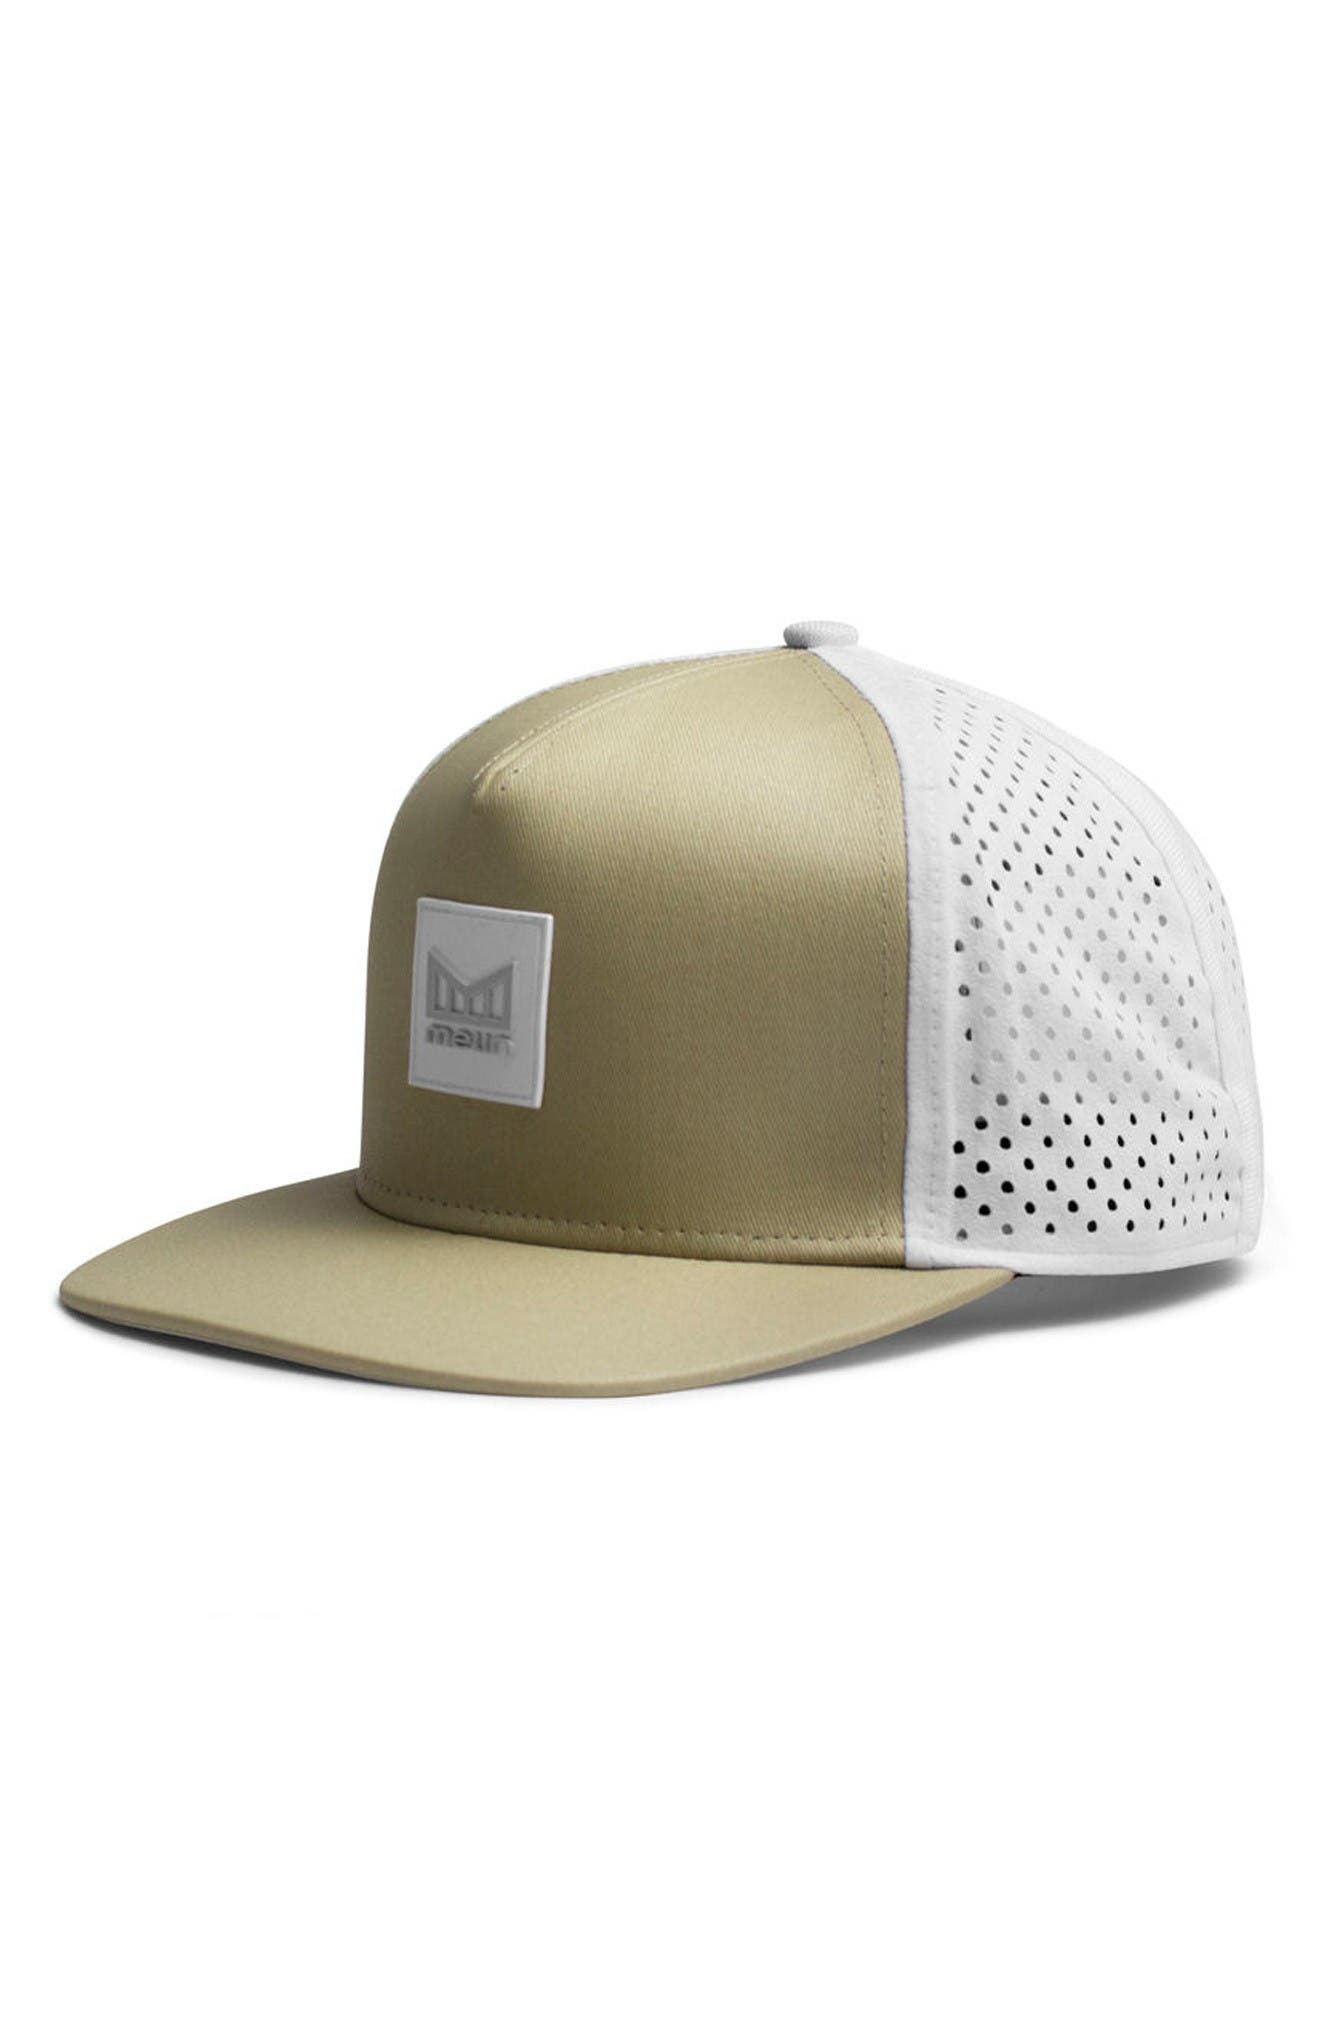 MELIN 'The Nomad' Split Fit Snapback Baseball Cap